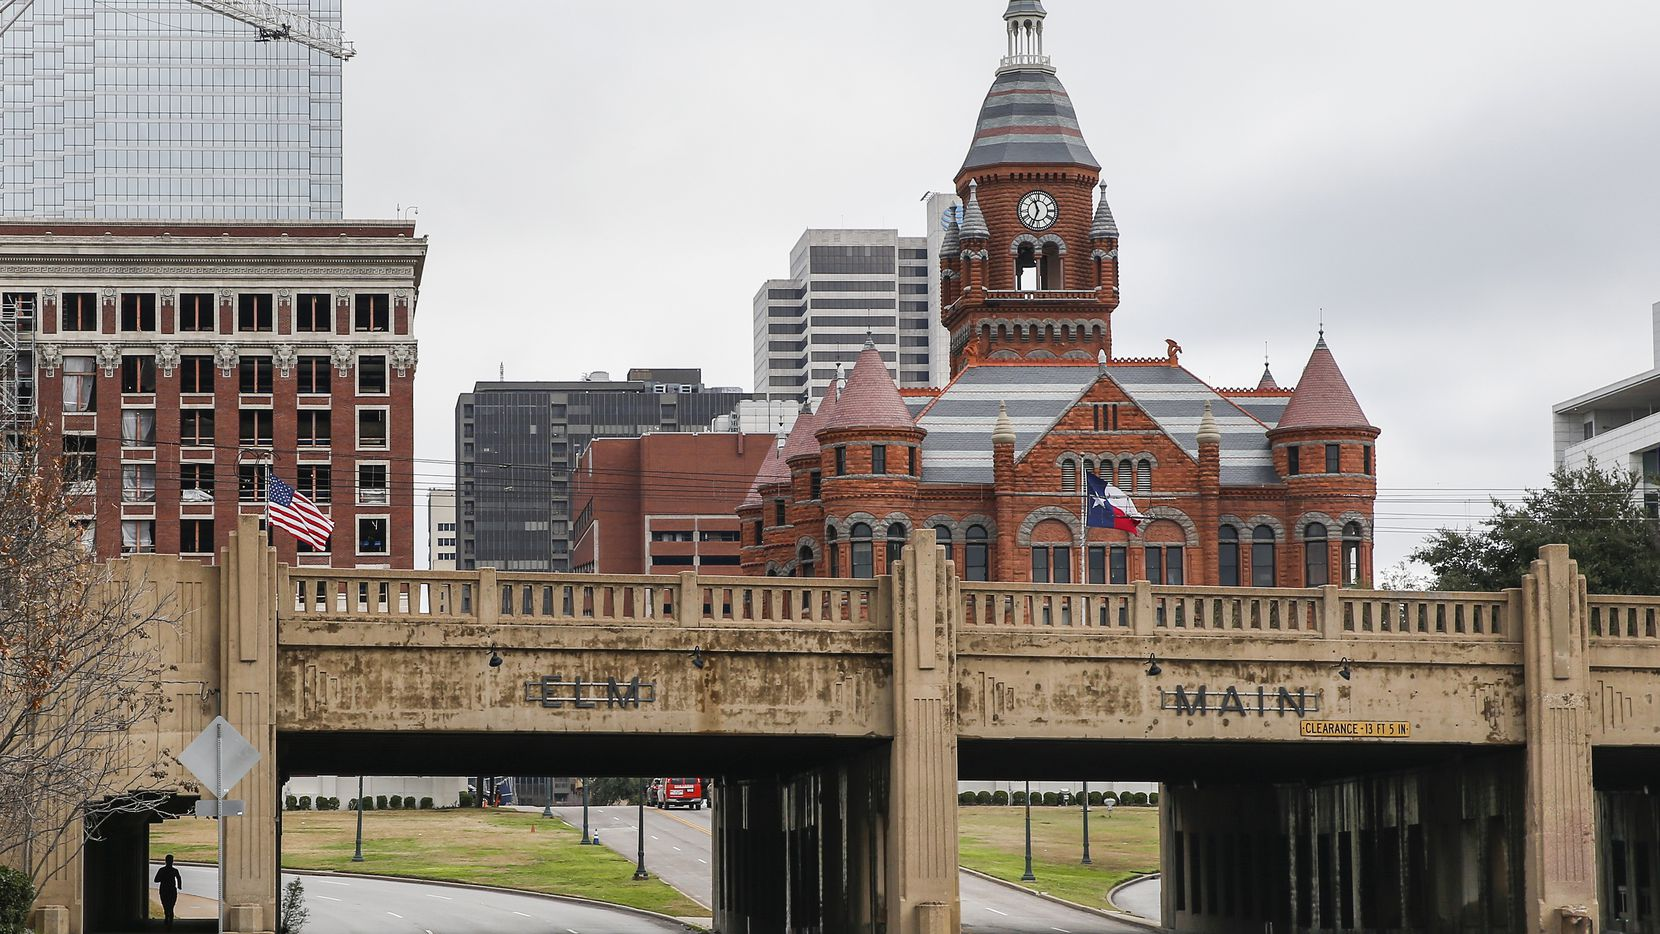 A jogger (far left) passes by Martyrs Park (left) on Thursday, Jan. 23, 2020 in Dallas. At right is the Triple Underpass, and behind it is Dealey Plaza.